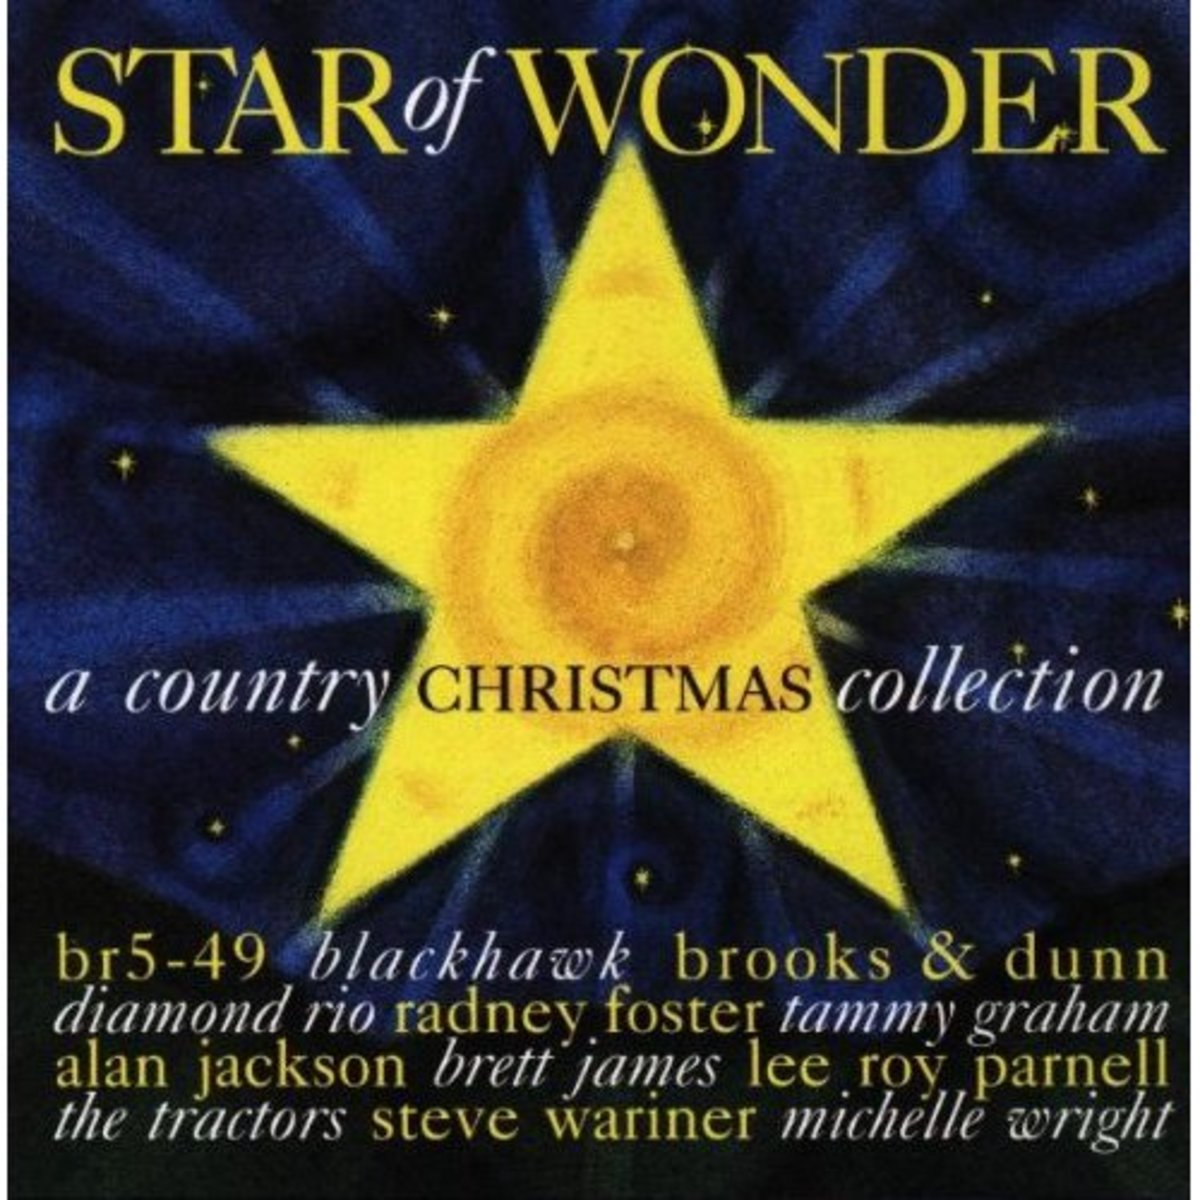 Star of Wonder ~ A Country Christmas Collection ~ for those that want a variety of country Christmas music, on one CD.